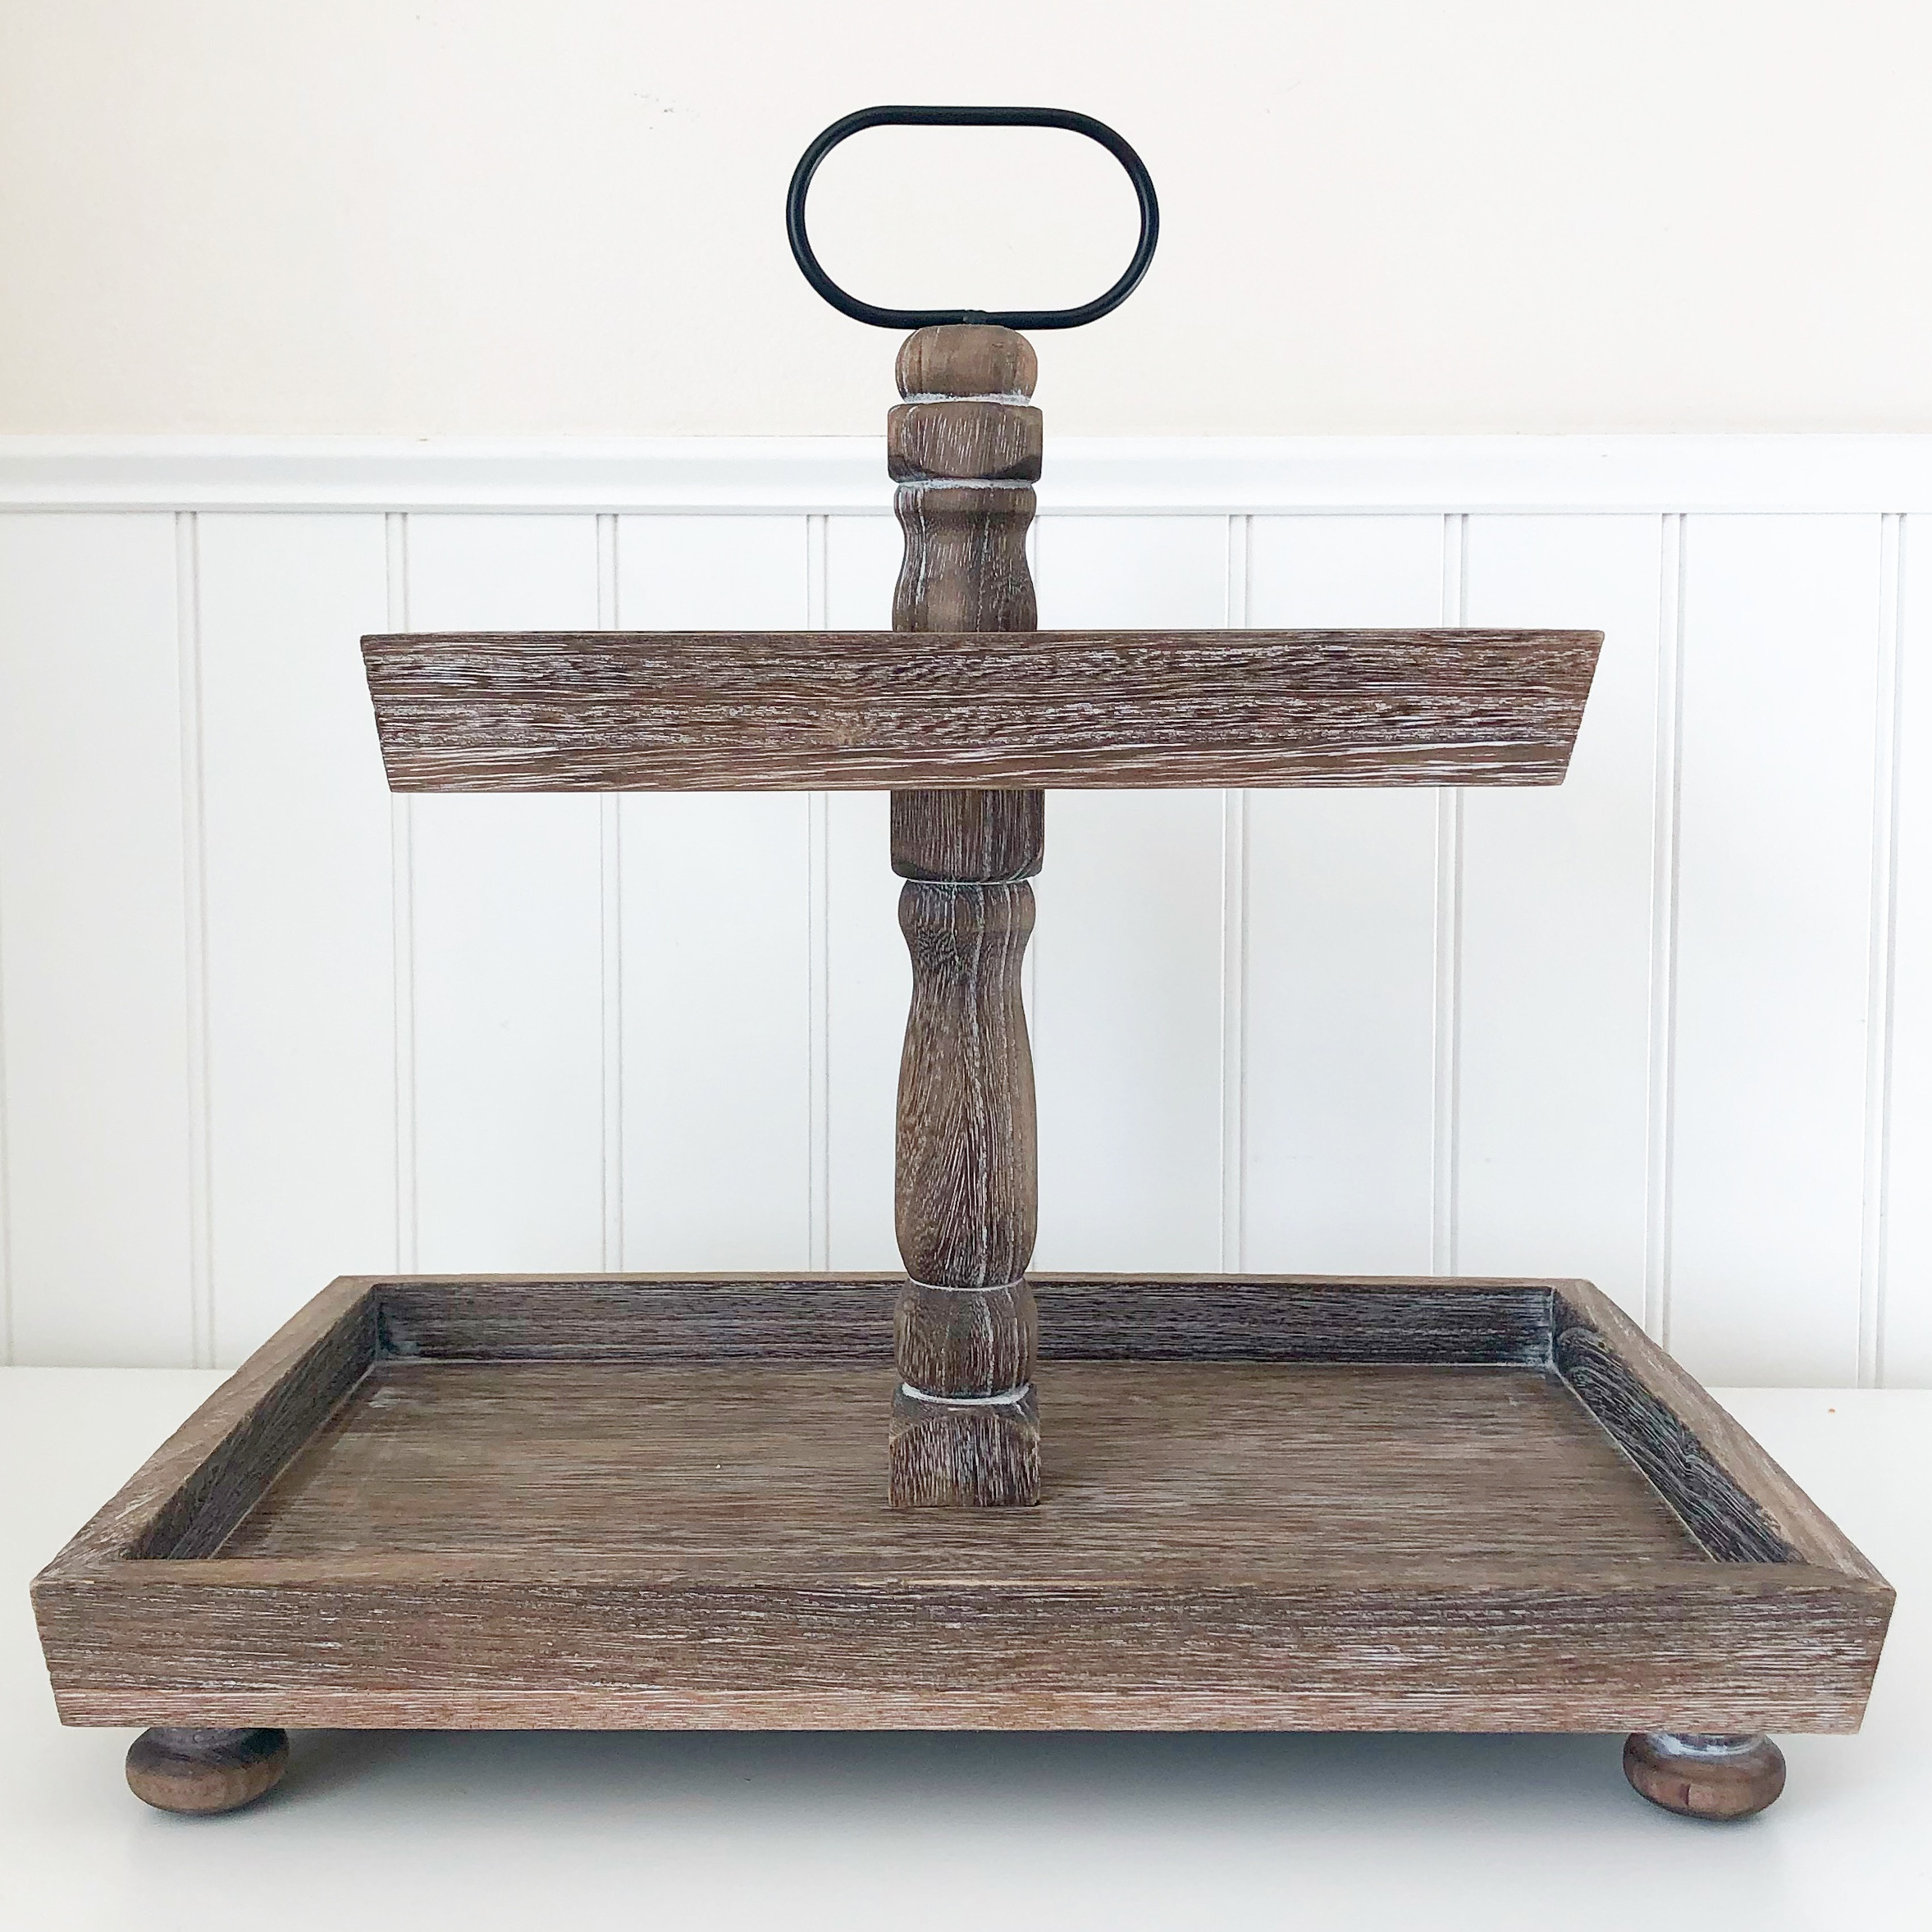 FD Tiered Tray-Antique Finish, Rectangle 15.75